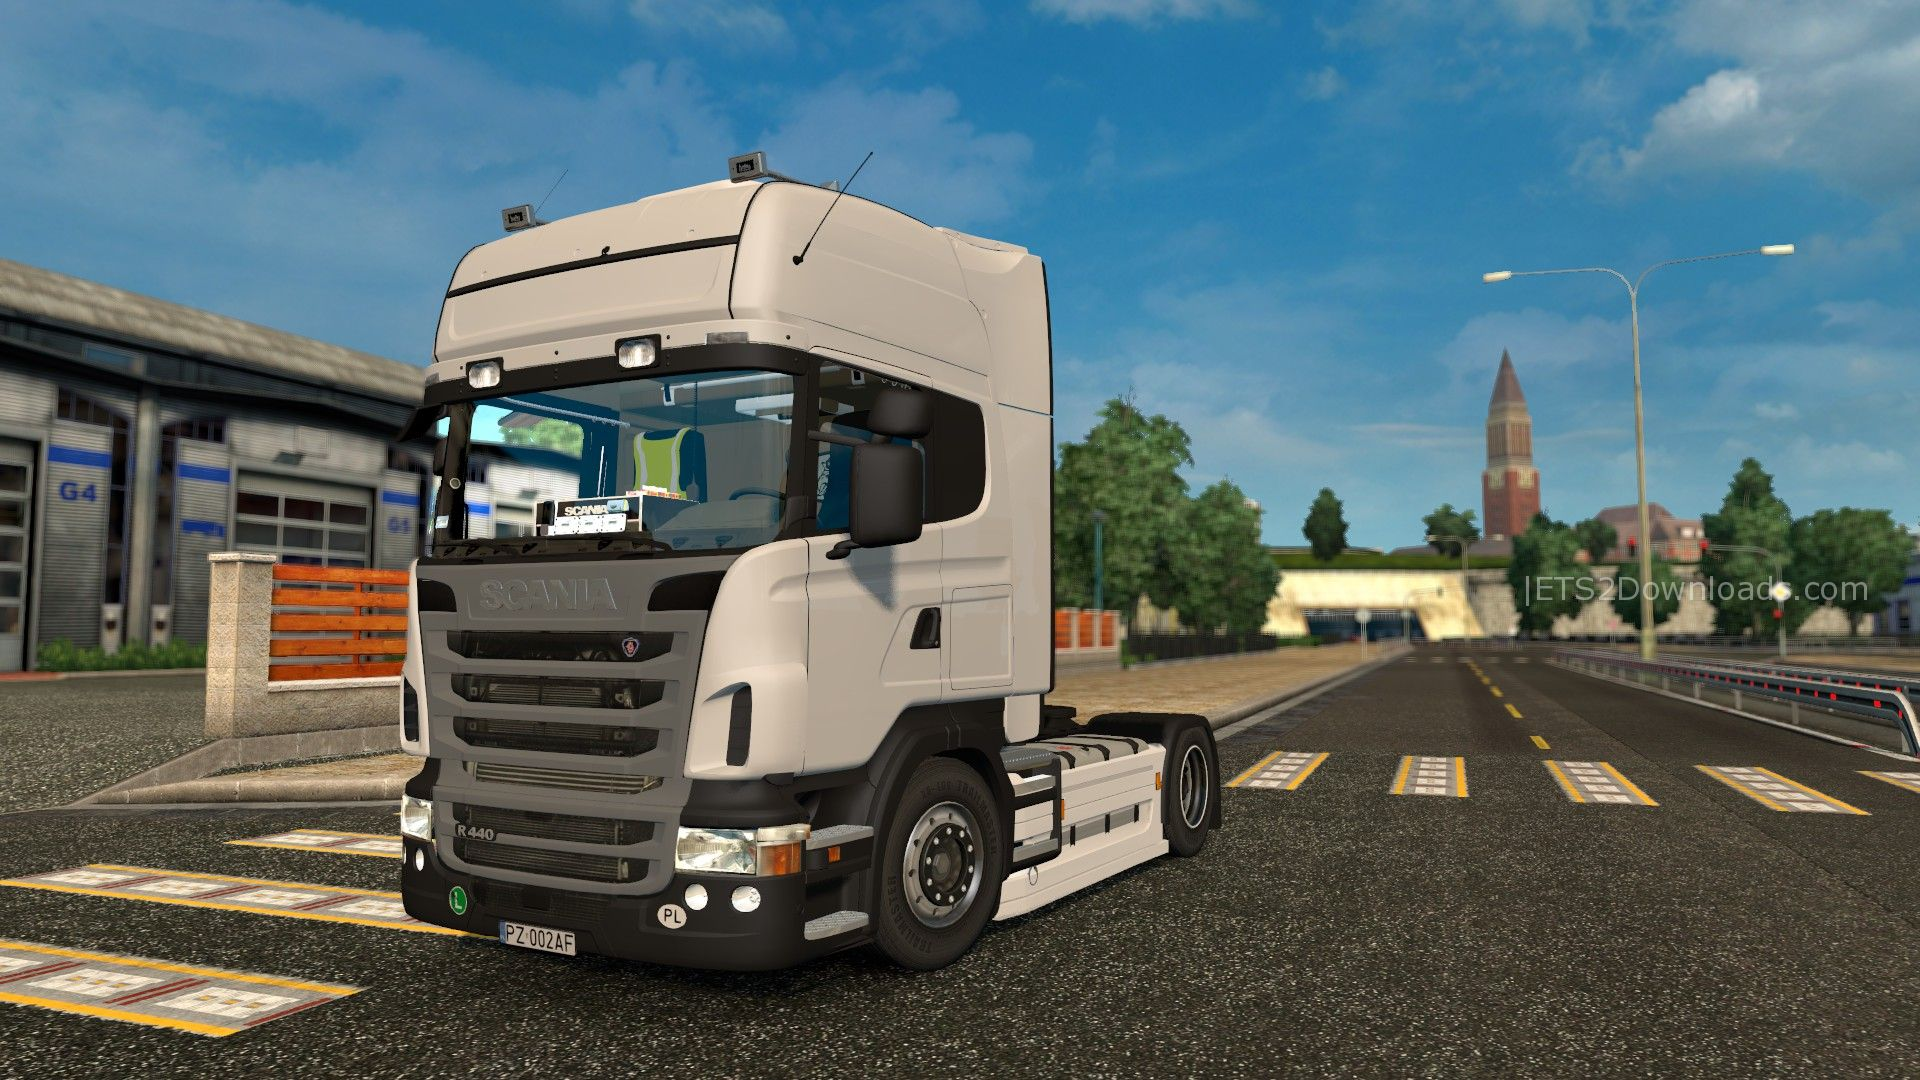 scania-r440-by-rafal-and-hypia02-1